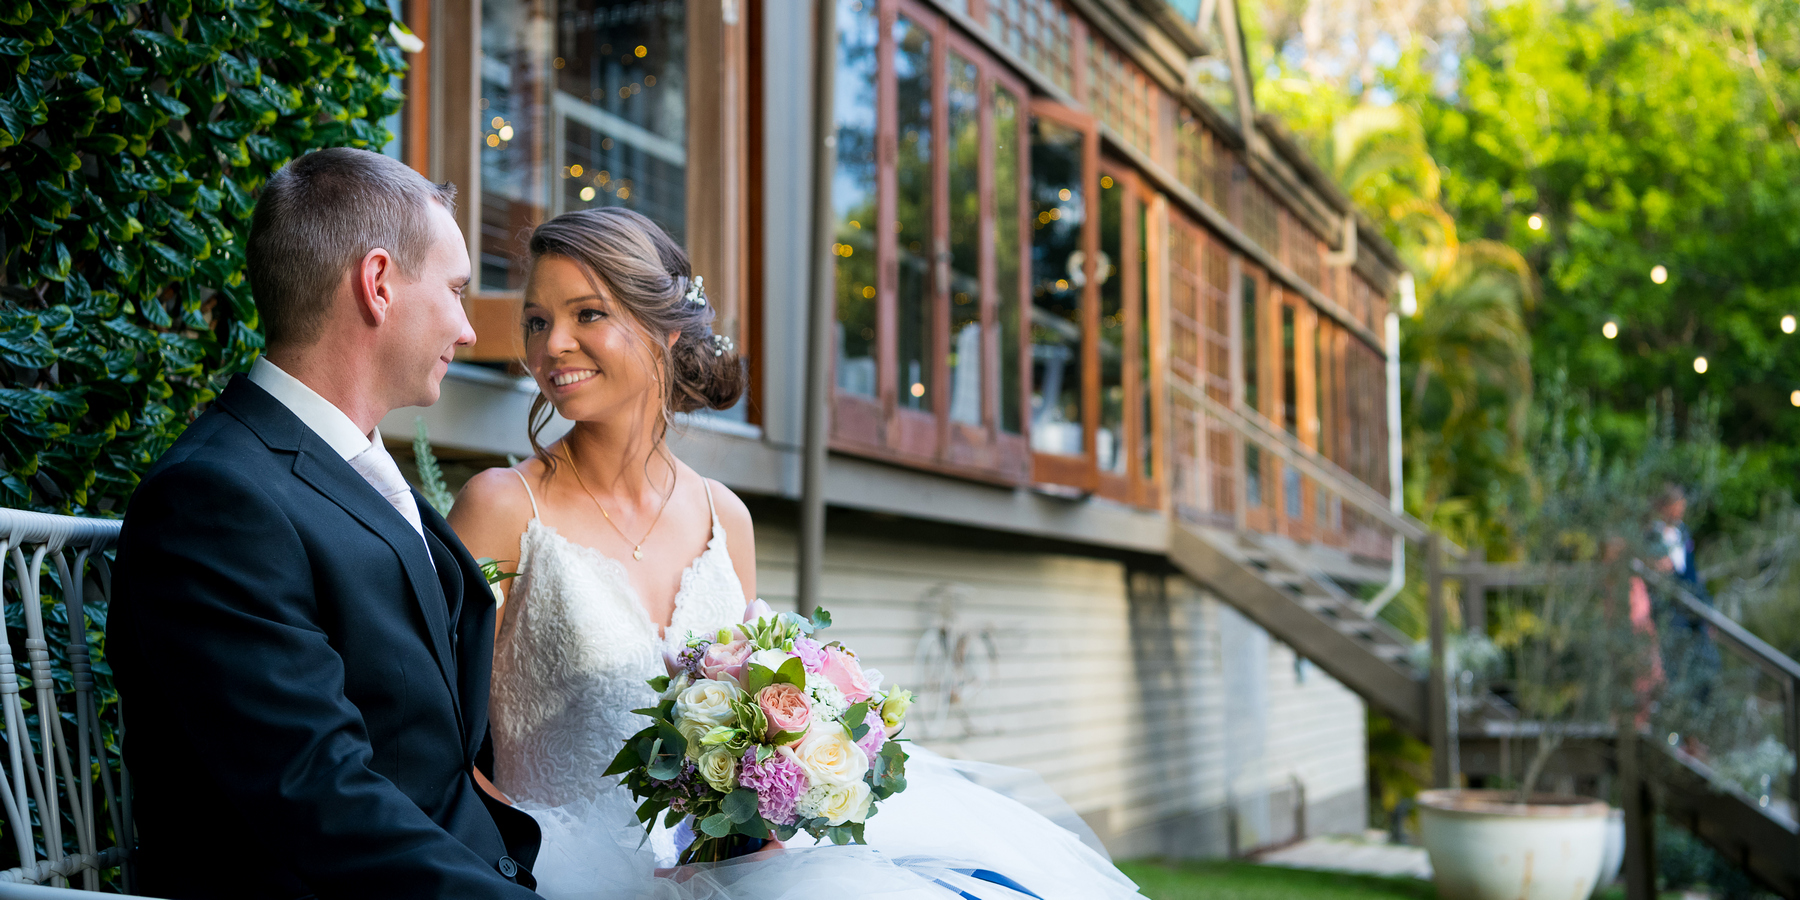 Wedding photo at gold coast